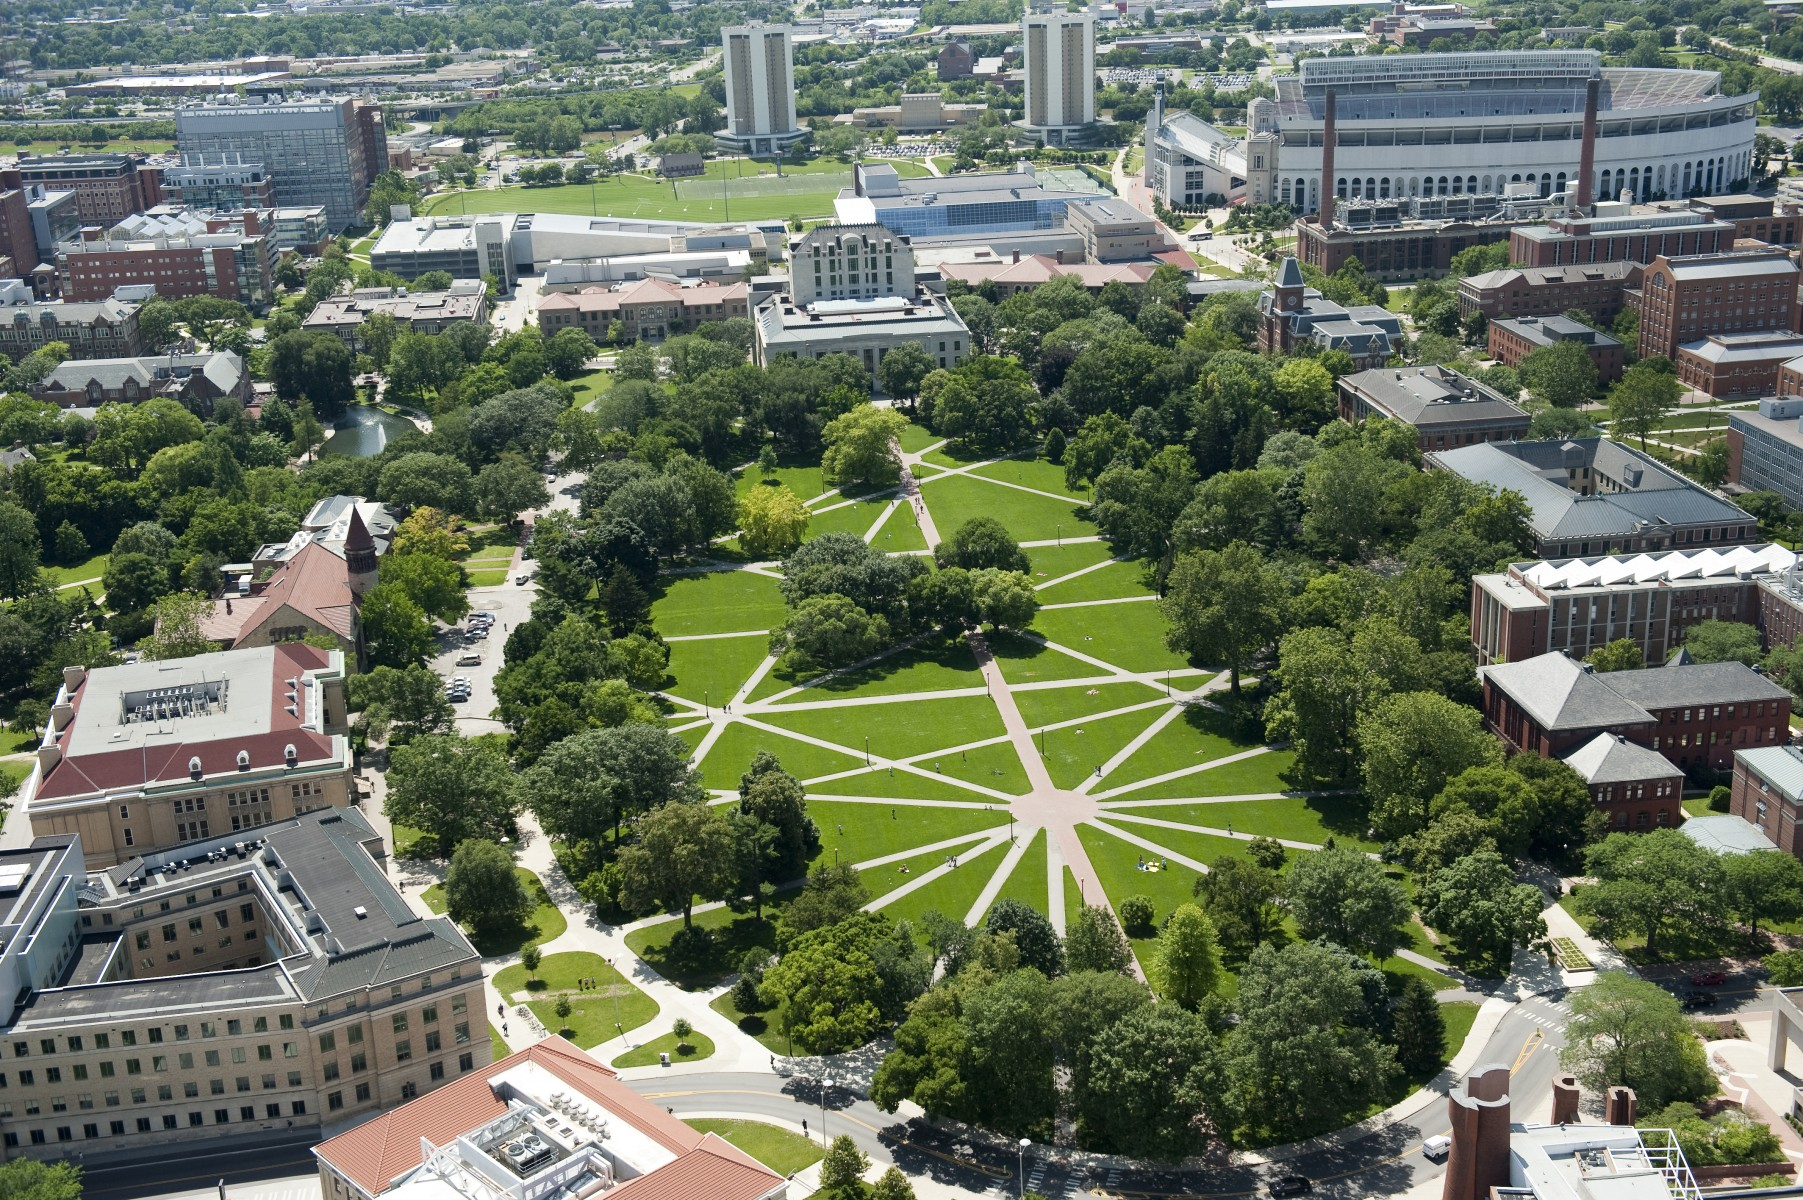 Aerial view of the Oval on the Columbus campus.